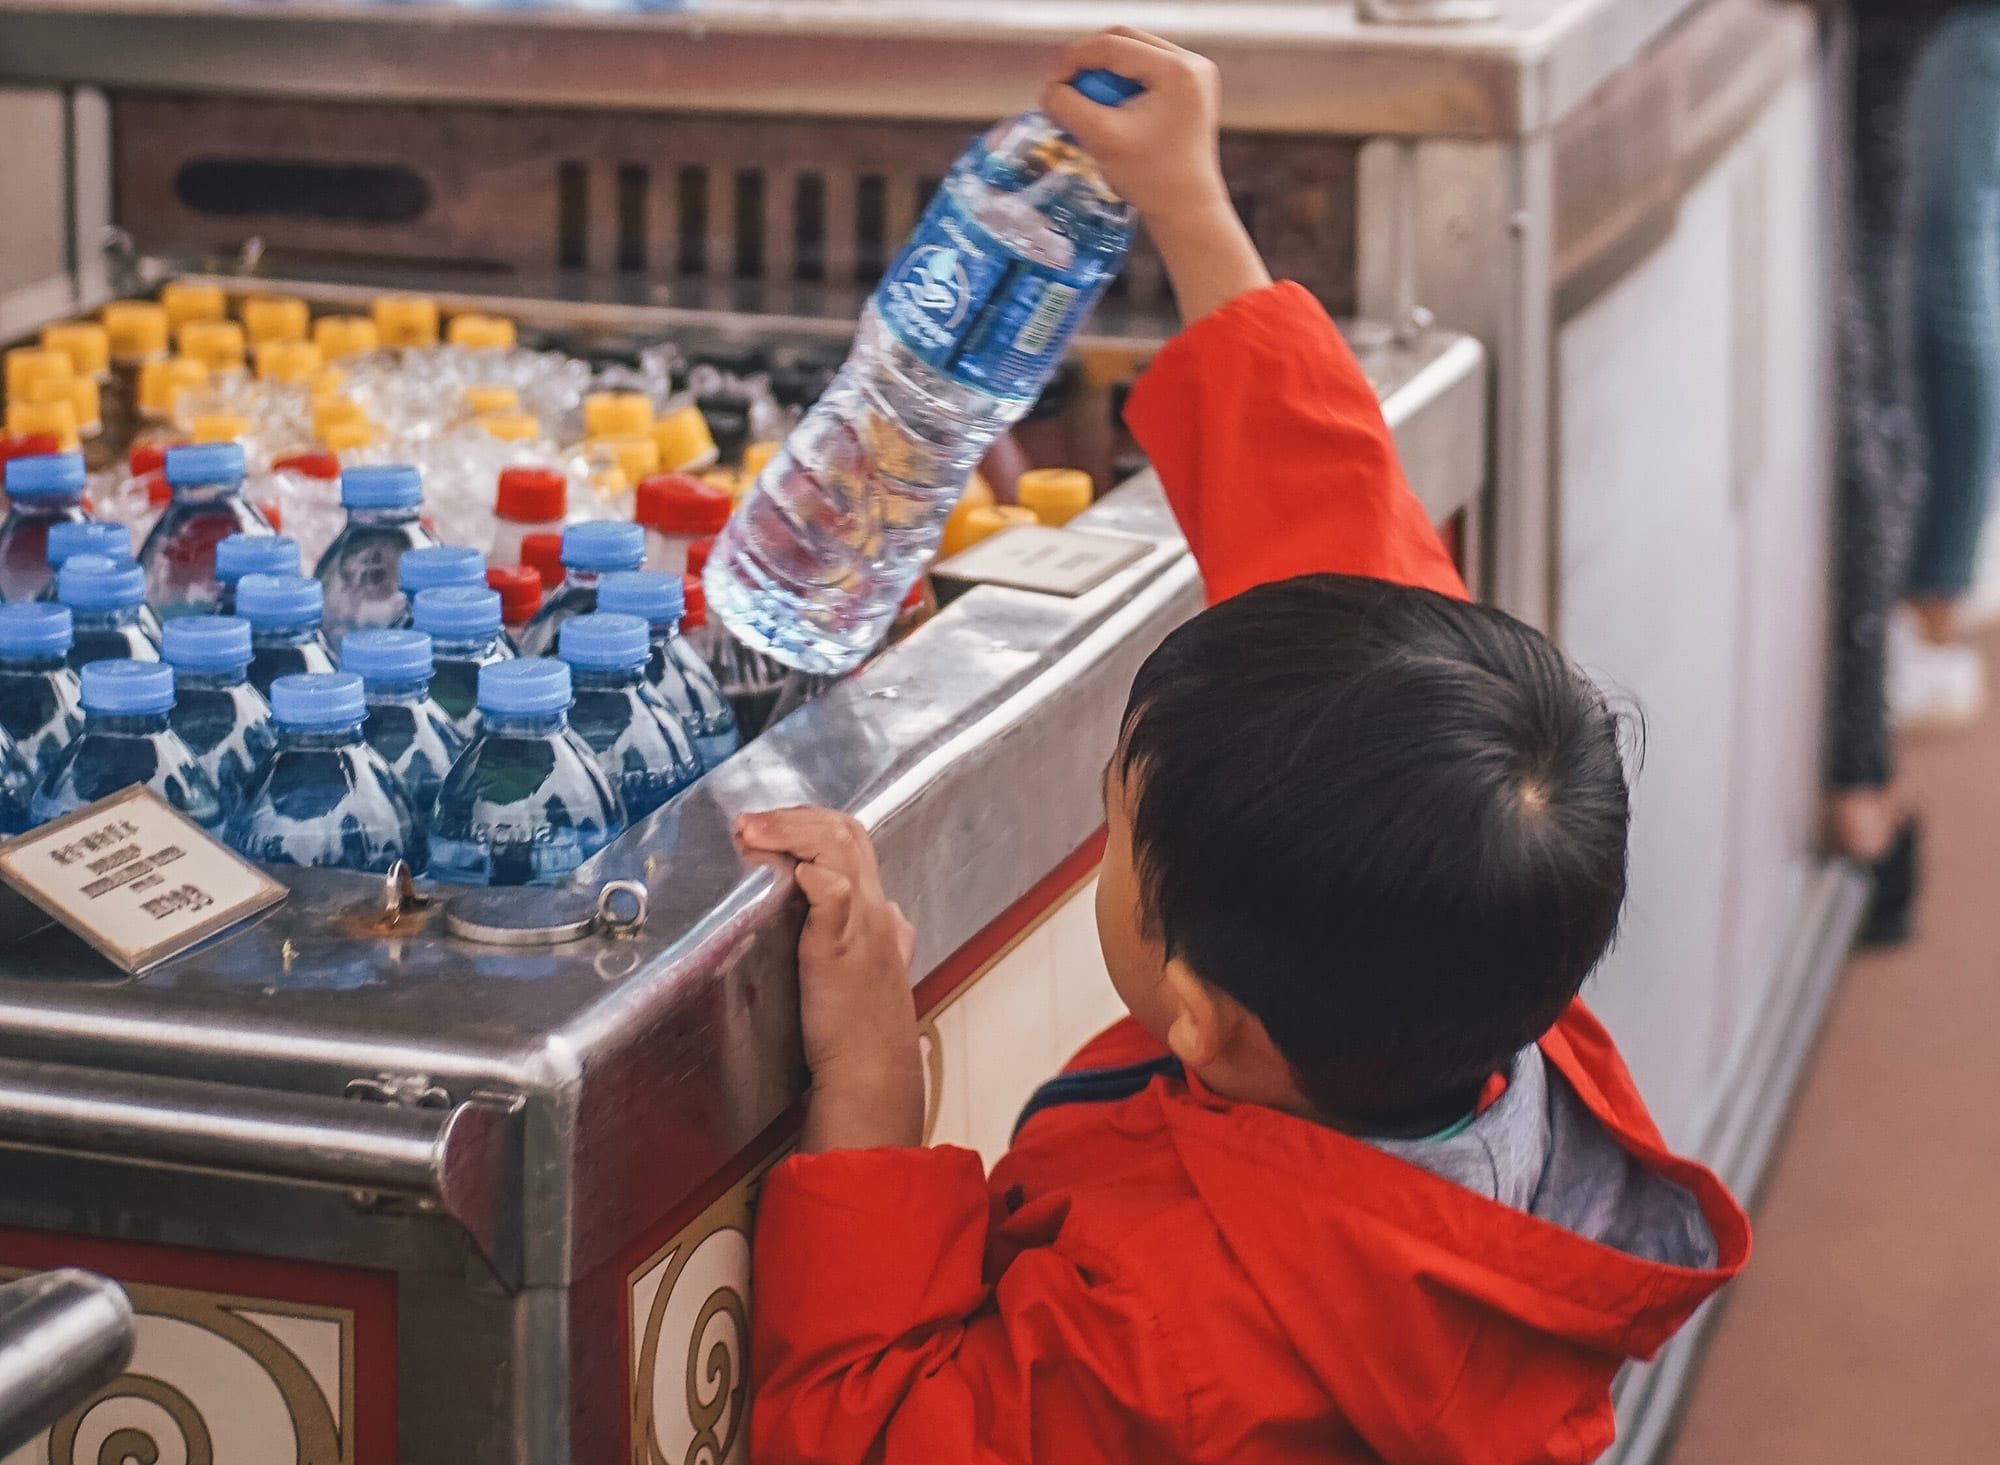 Young boy pickup a bottle of water. REVOLVE